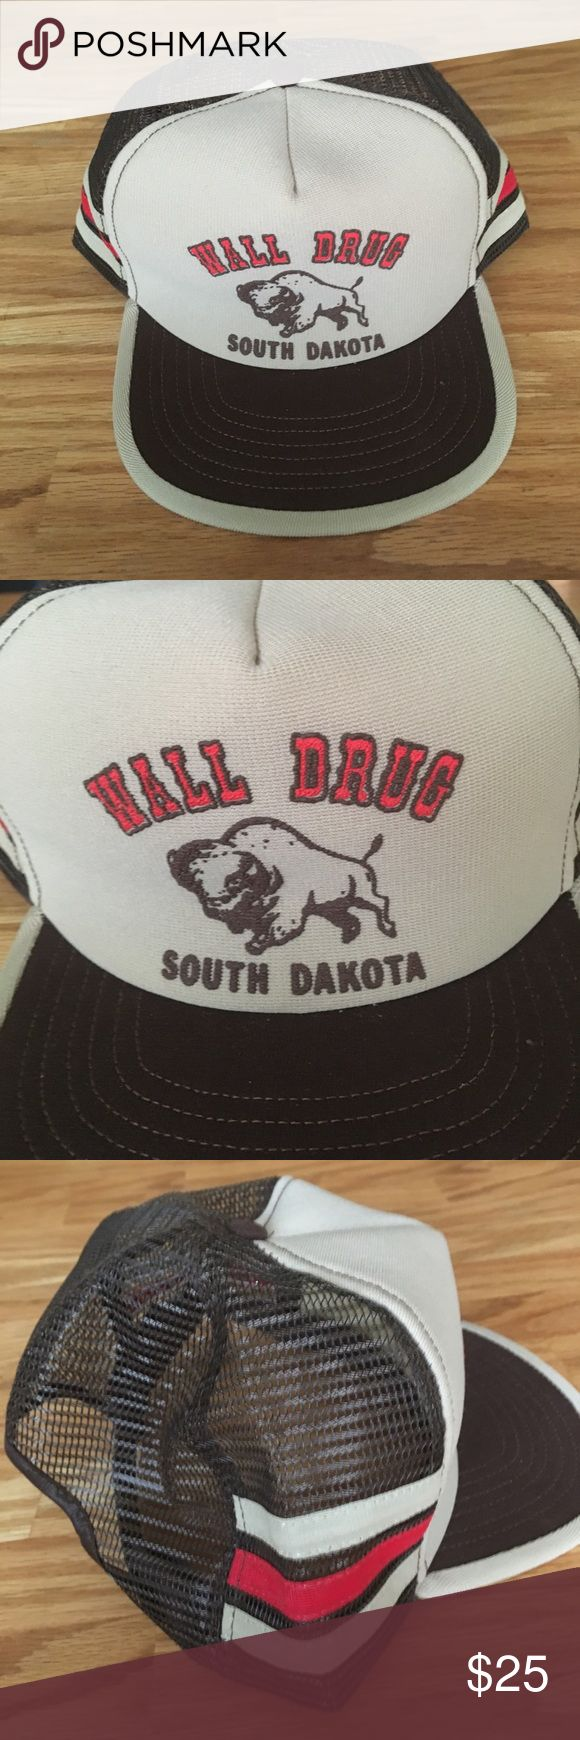 Vintage wall drug South Dakota trucker hat Hat has a snap back feature. No stains or odors. Hat is is excellent used condition! Thank you for looking! :) Accessories Hats